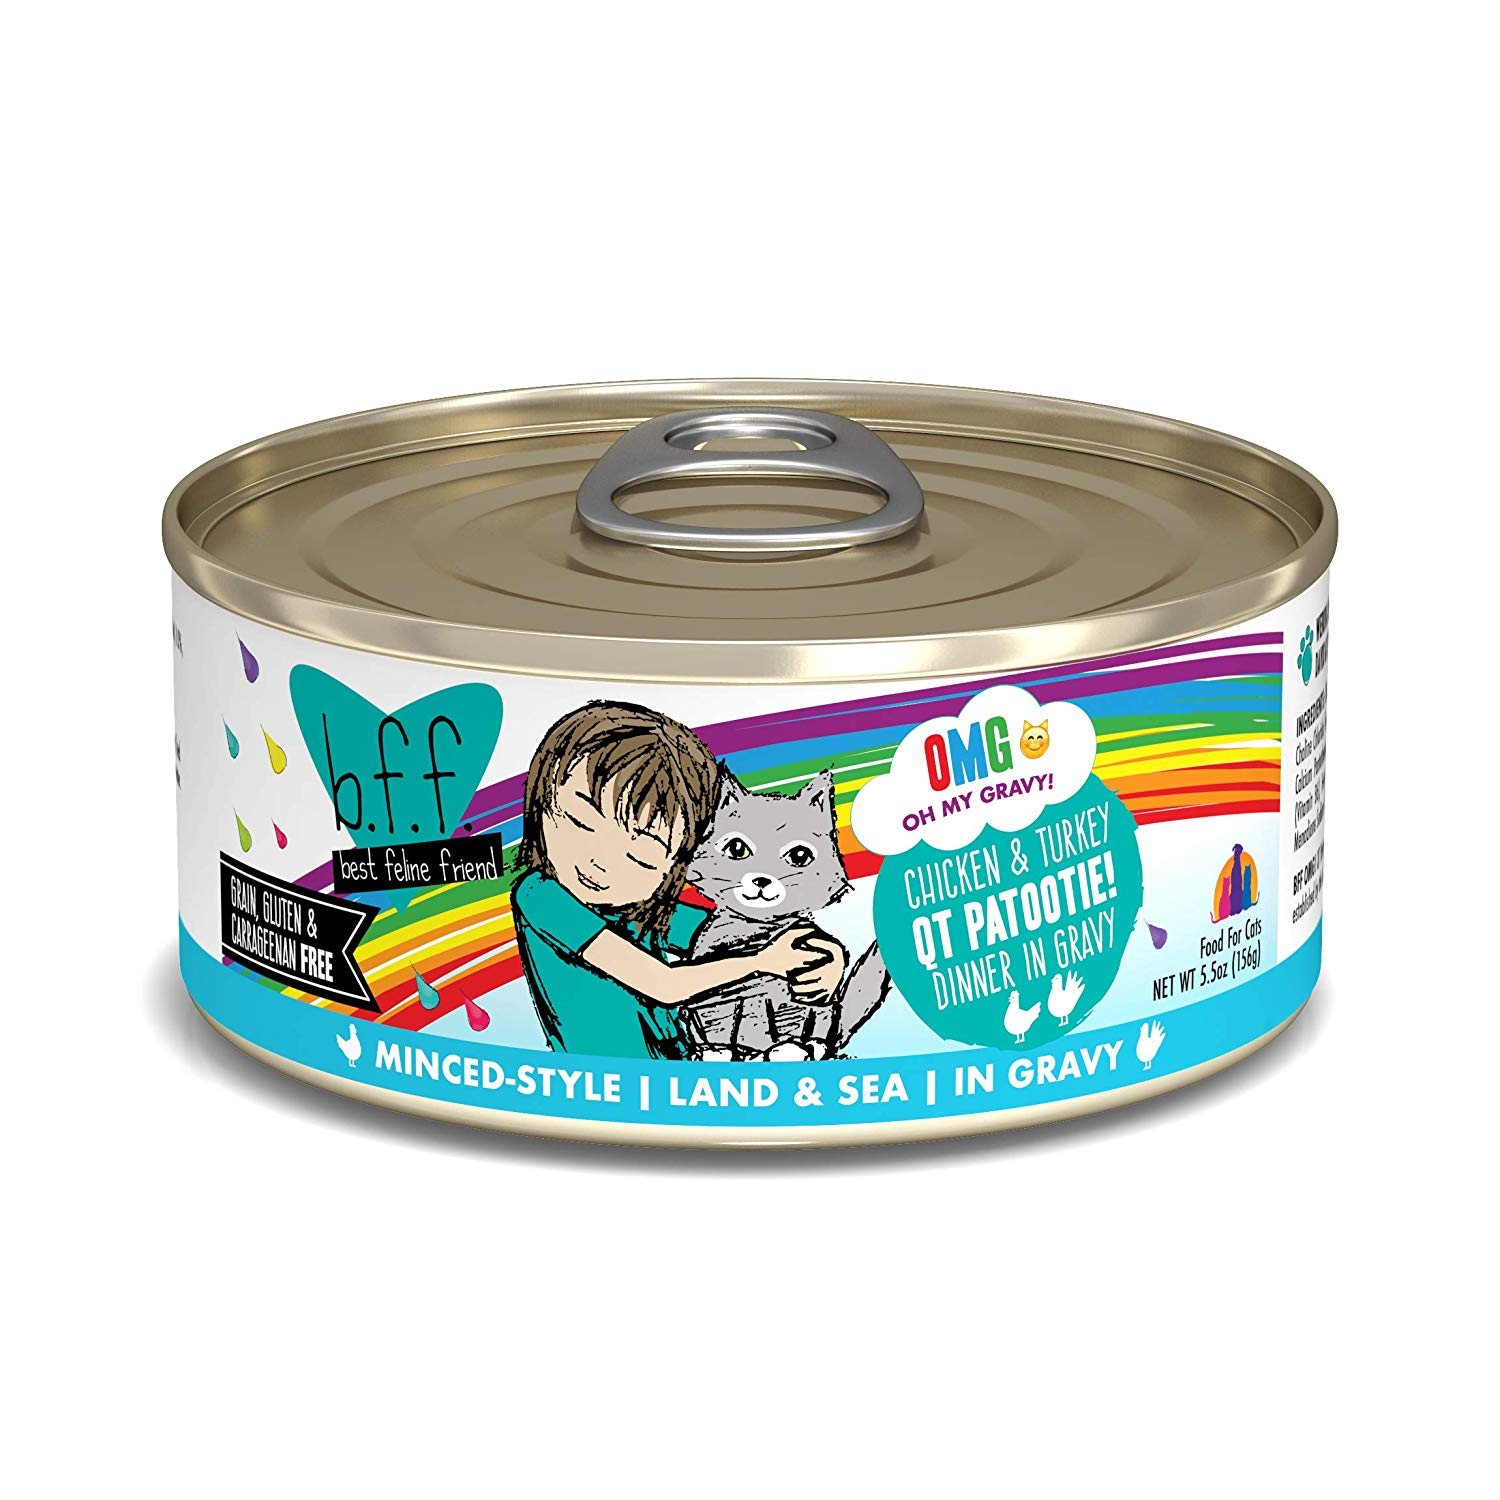 BFF Oh My Gravy! QT Patootie! Chicken & Turkey Dinner in Gravy Grain-Free Wet Cat Food, 5.5-oz